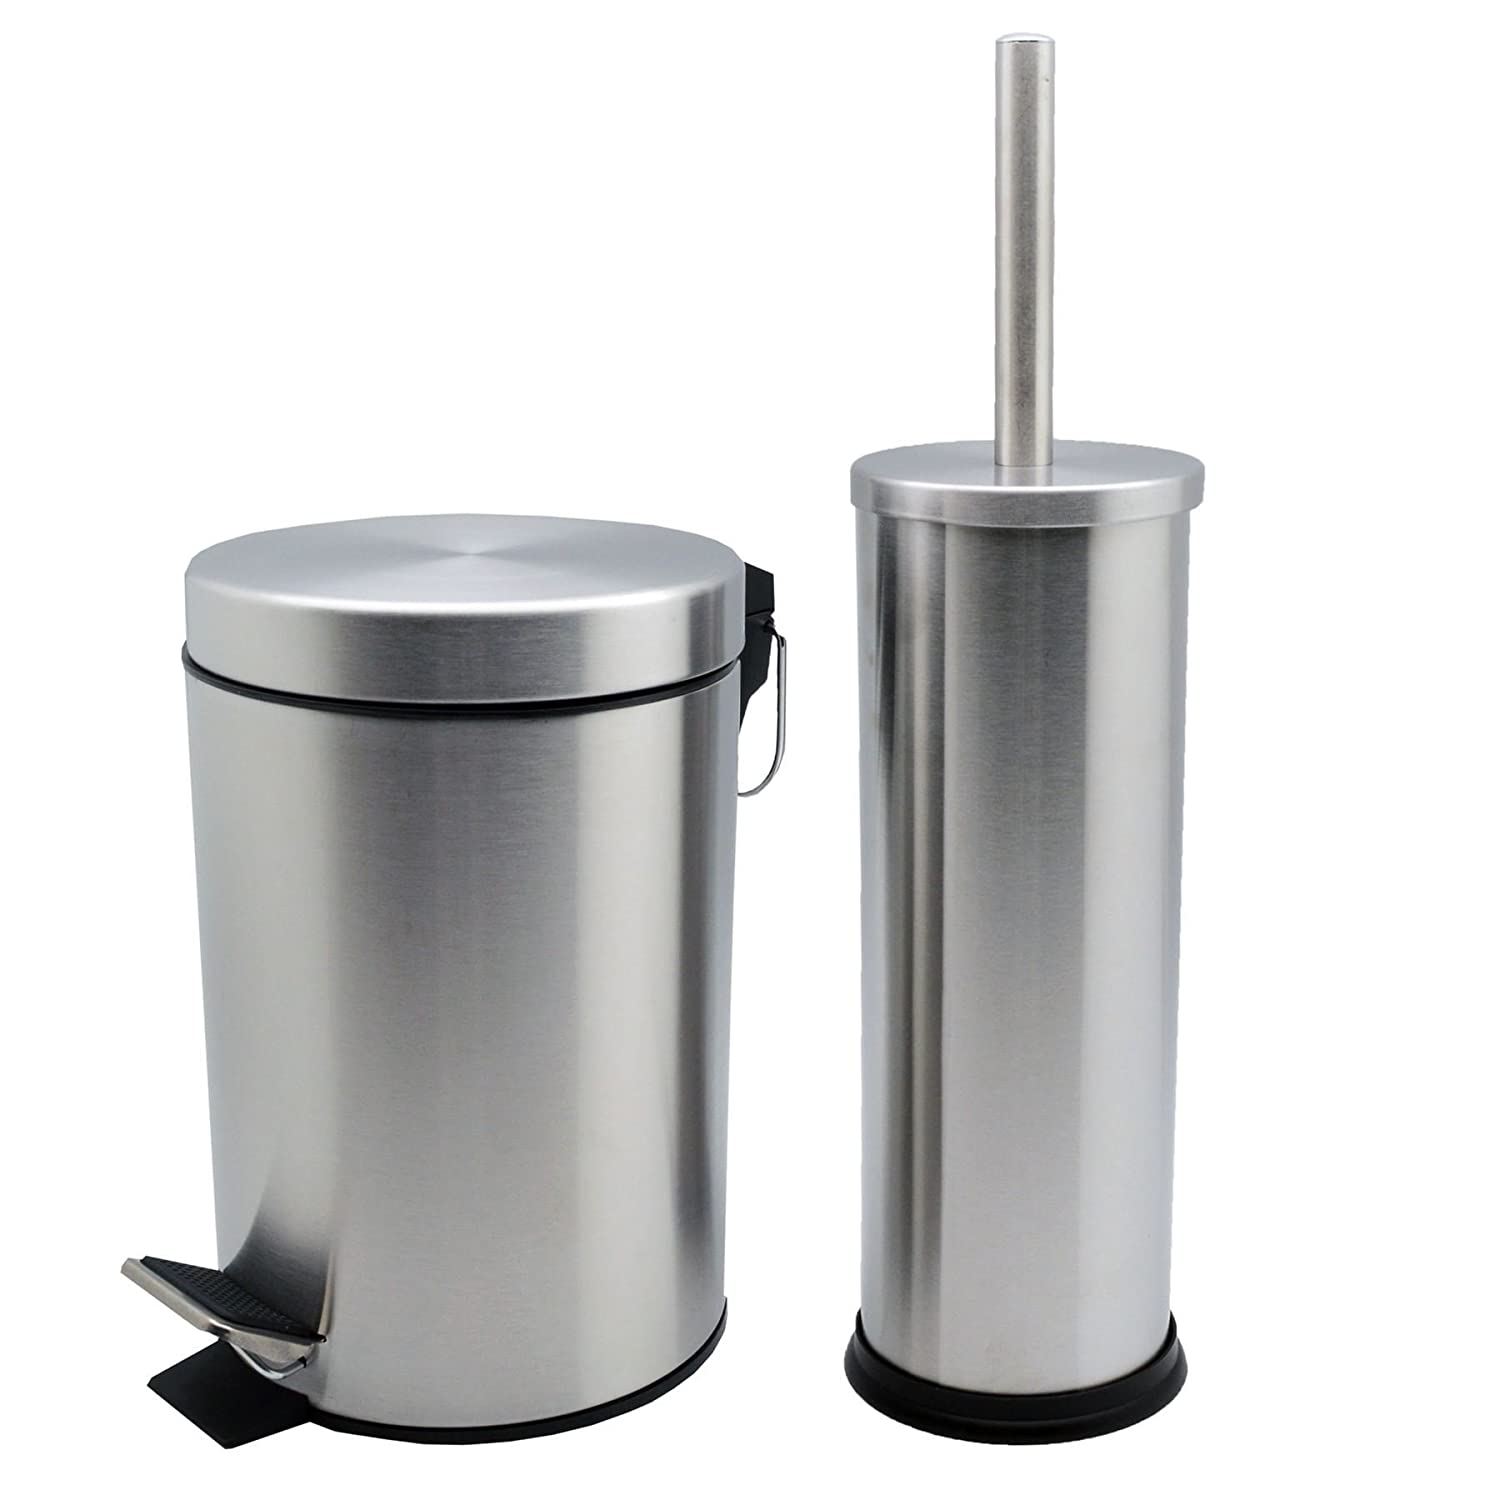 Harbour Housewares Bathroom Pedal Bin and Toilet Brush Set - 3 Litre Bin - Matt Finish